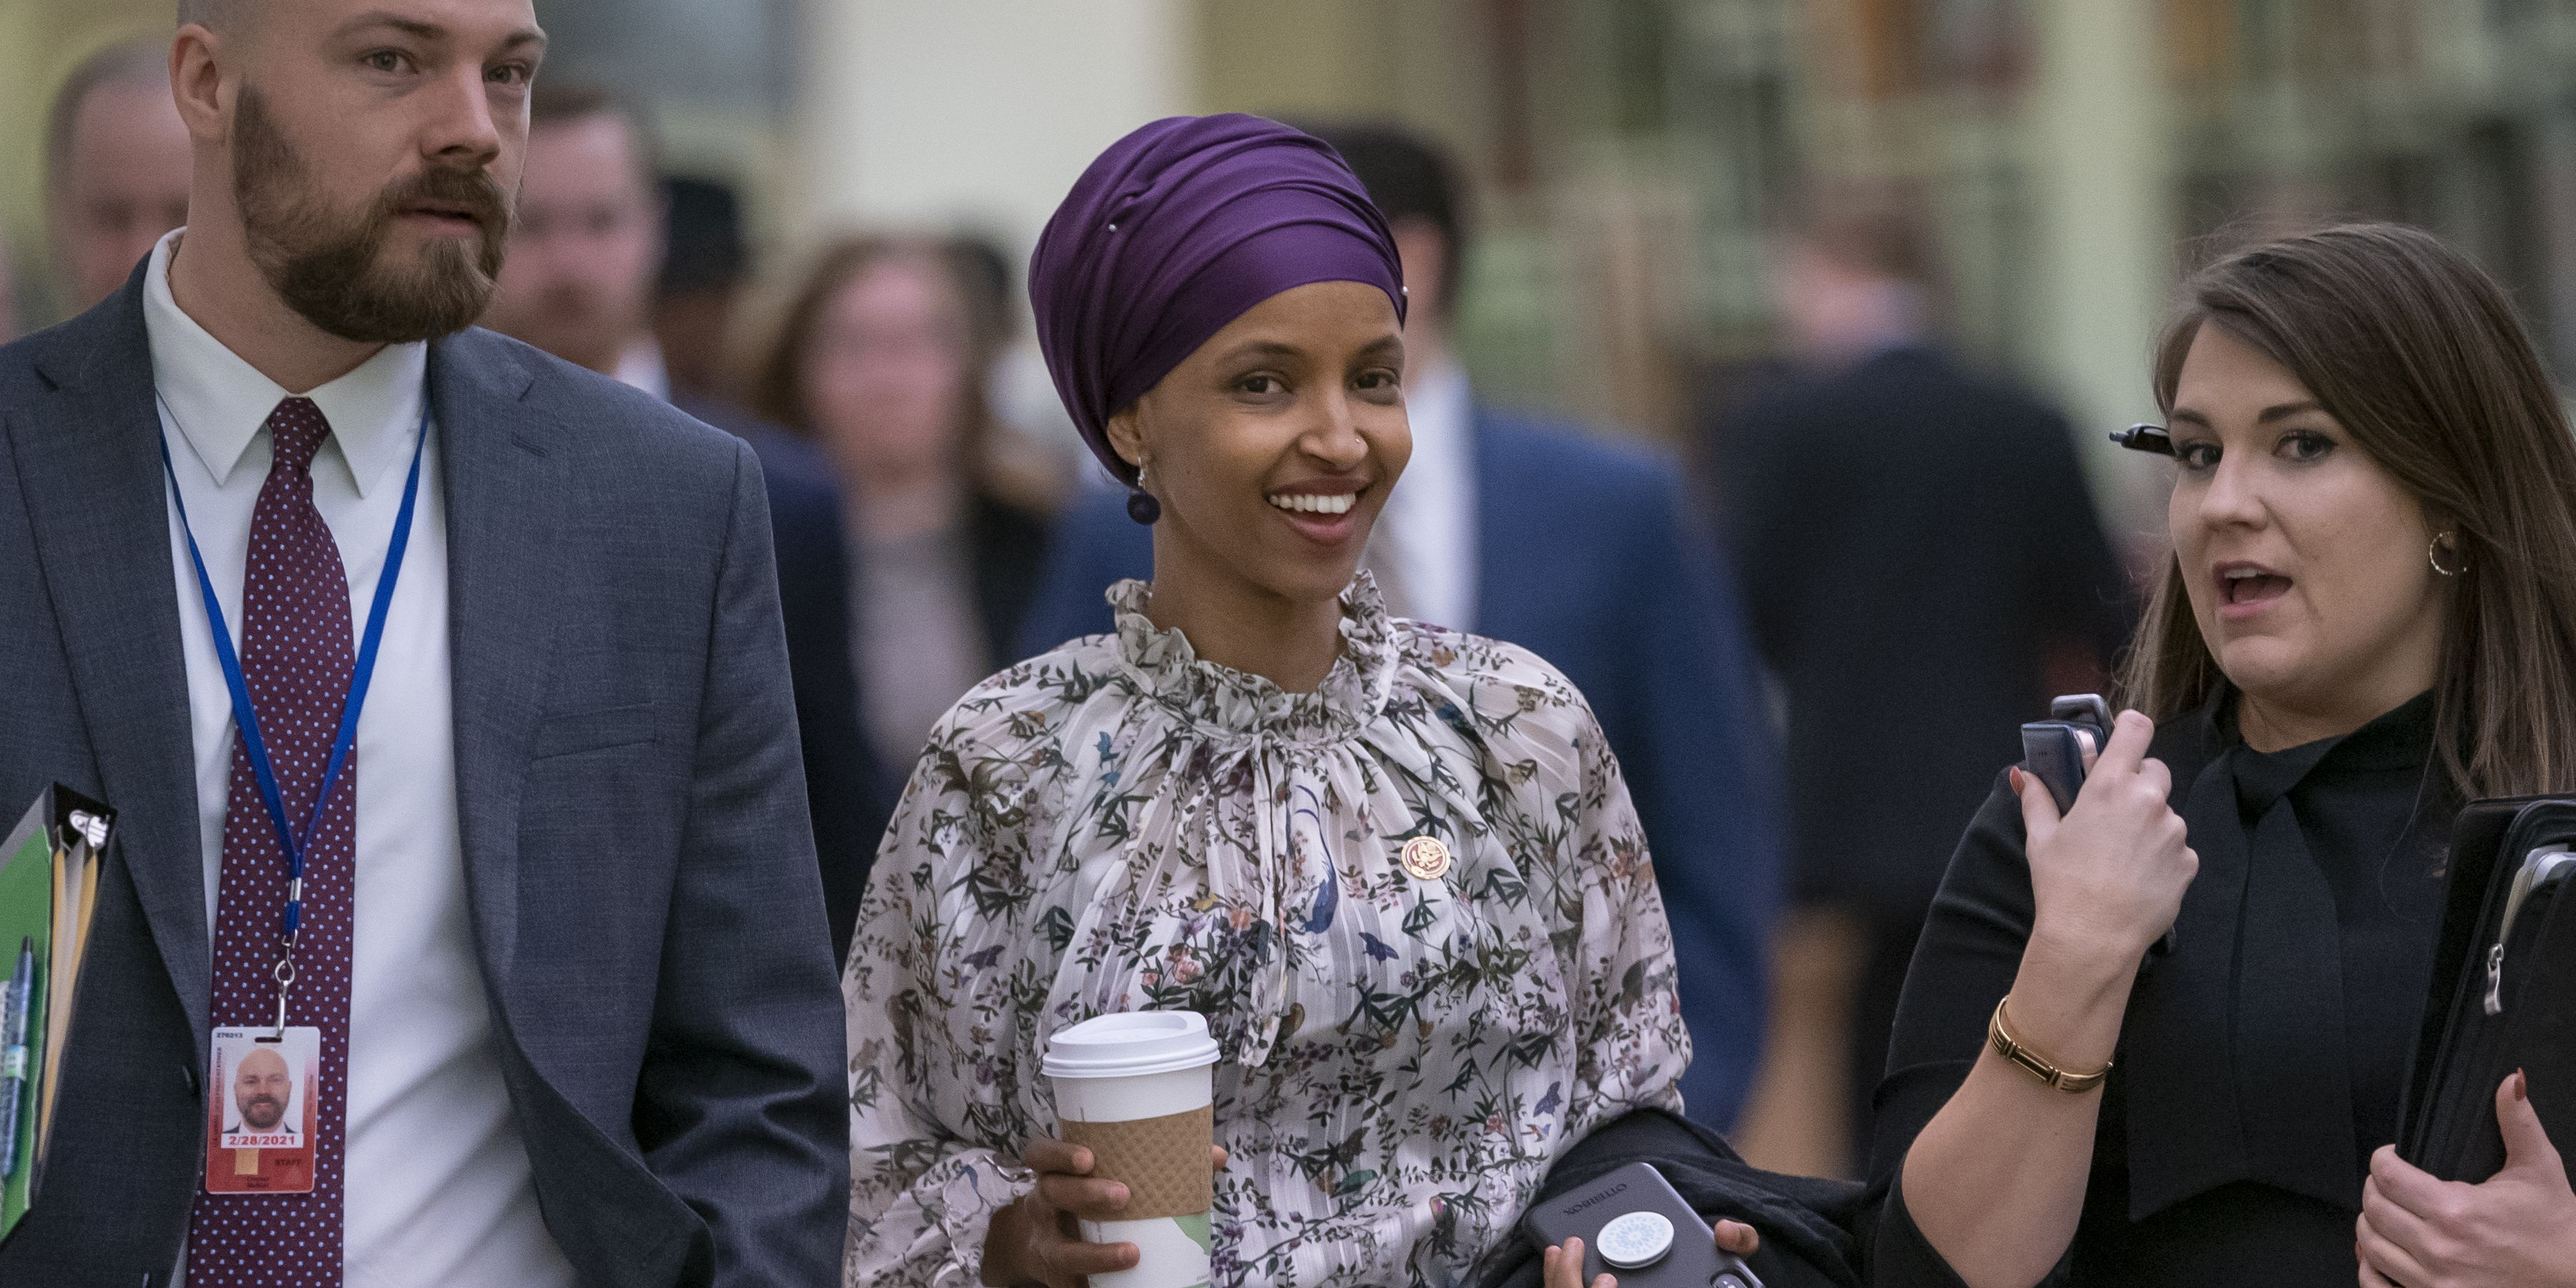 Dems struggle to respond to Rep. Omar over Israel comments